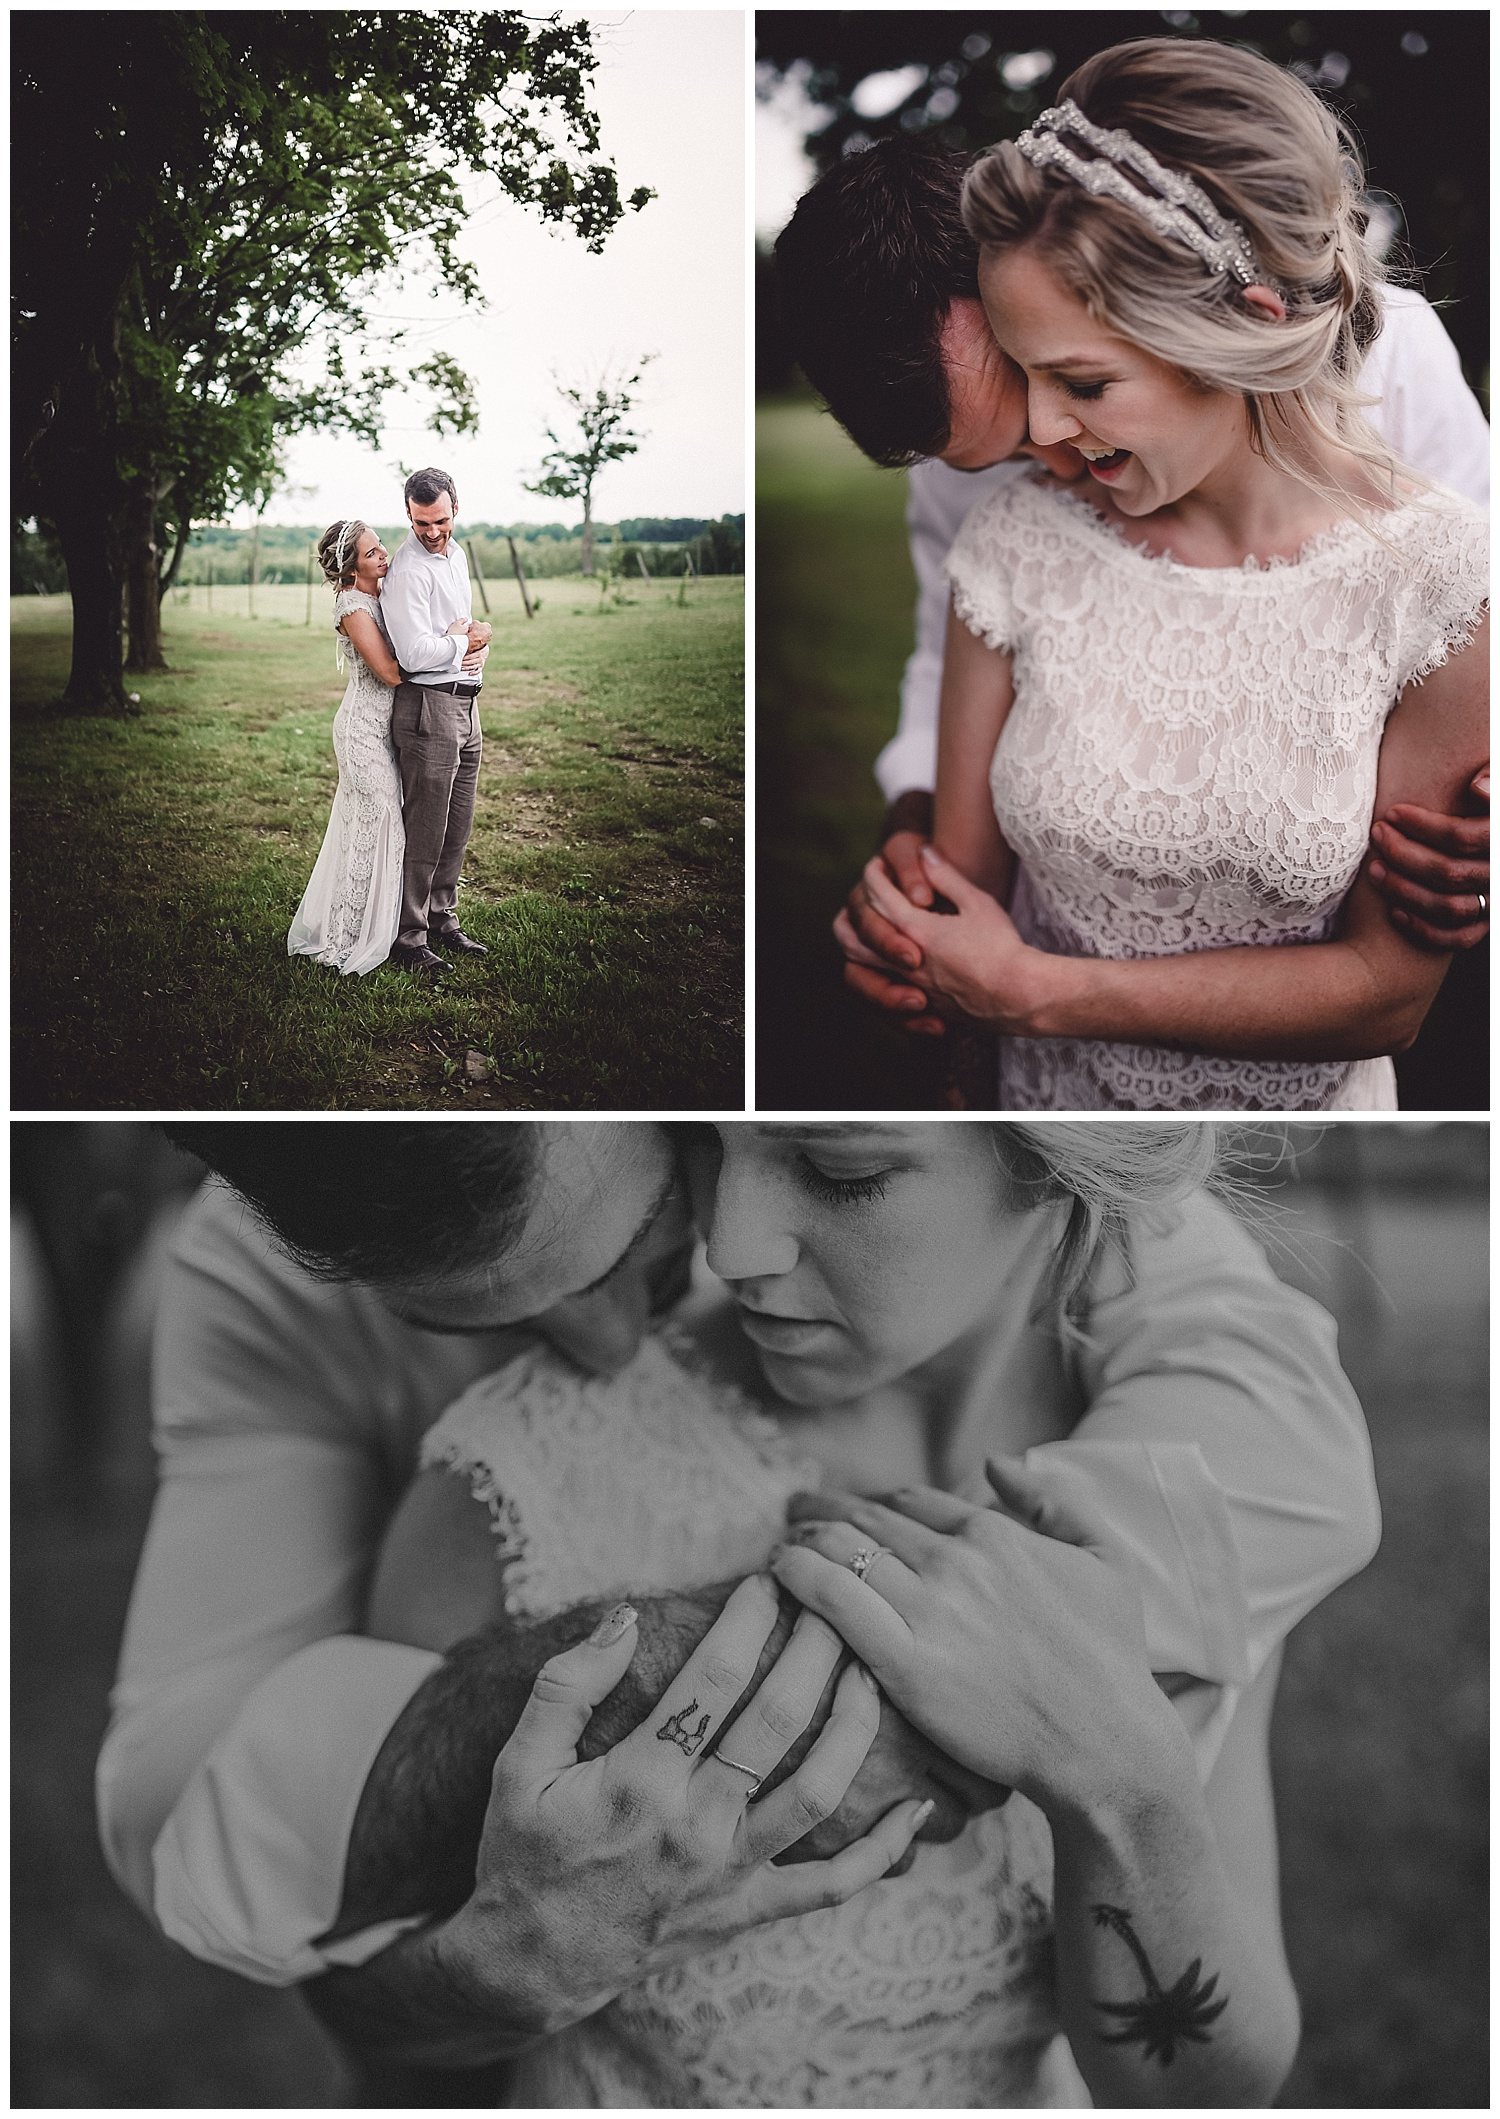 Wedding Photographer in Scranton Central and Northeast PA at Tolino Vineyards in Bangor PA